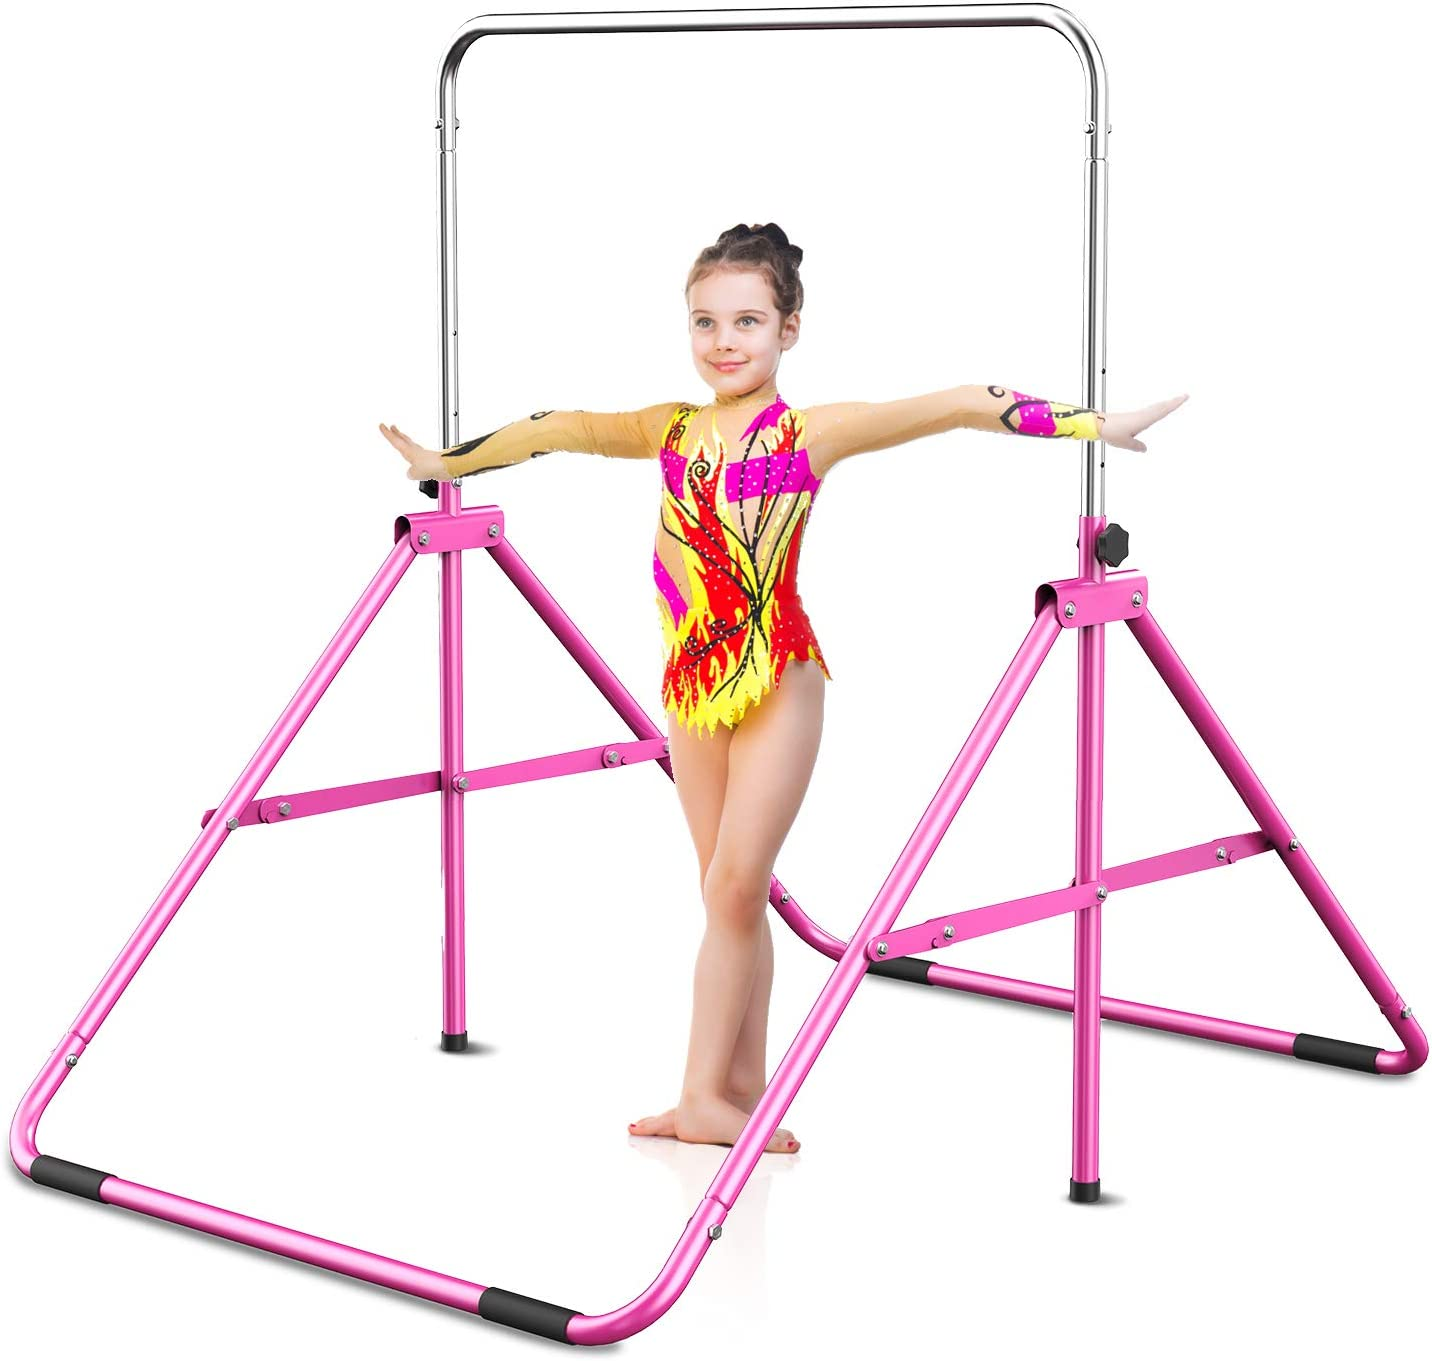 Gymbarpro Gymnastics Bars for Kids, Adjustable Horizontal Bar, Junior Training Bars Folding Monkey Bars for Beginner Practicing Home Kids Gymnastics Equipment for Home